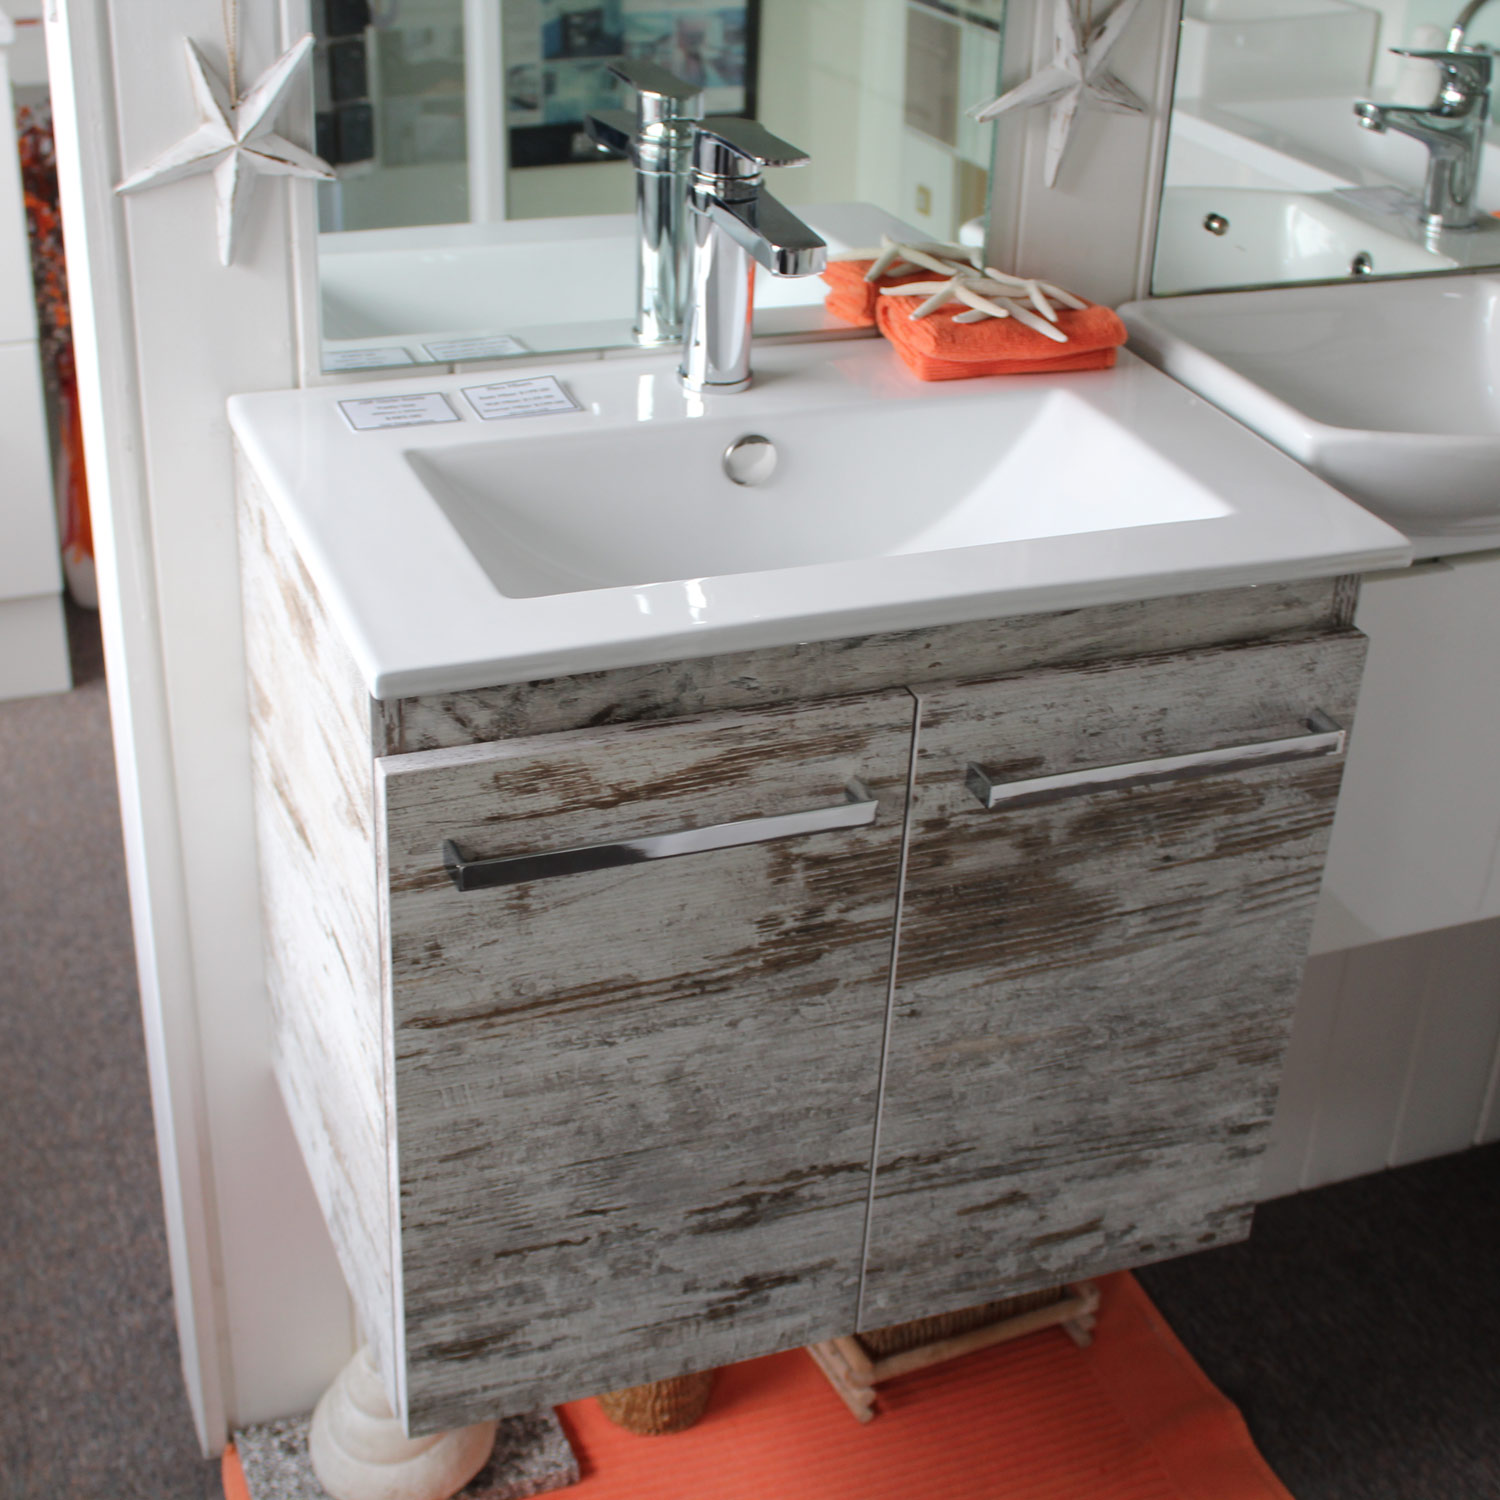 New Ensuite Bathroom Vanities Eyagcicom - Bathroom vanities fort myers fl